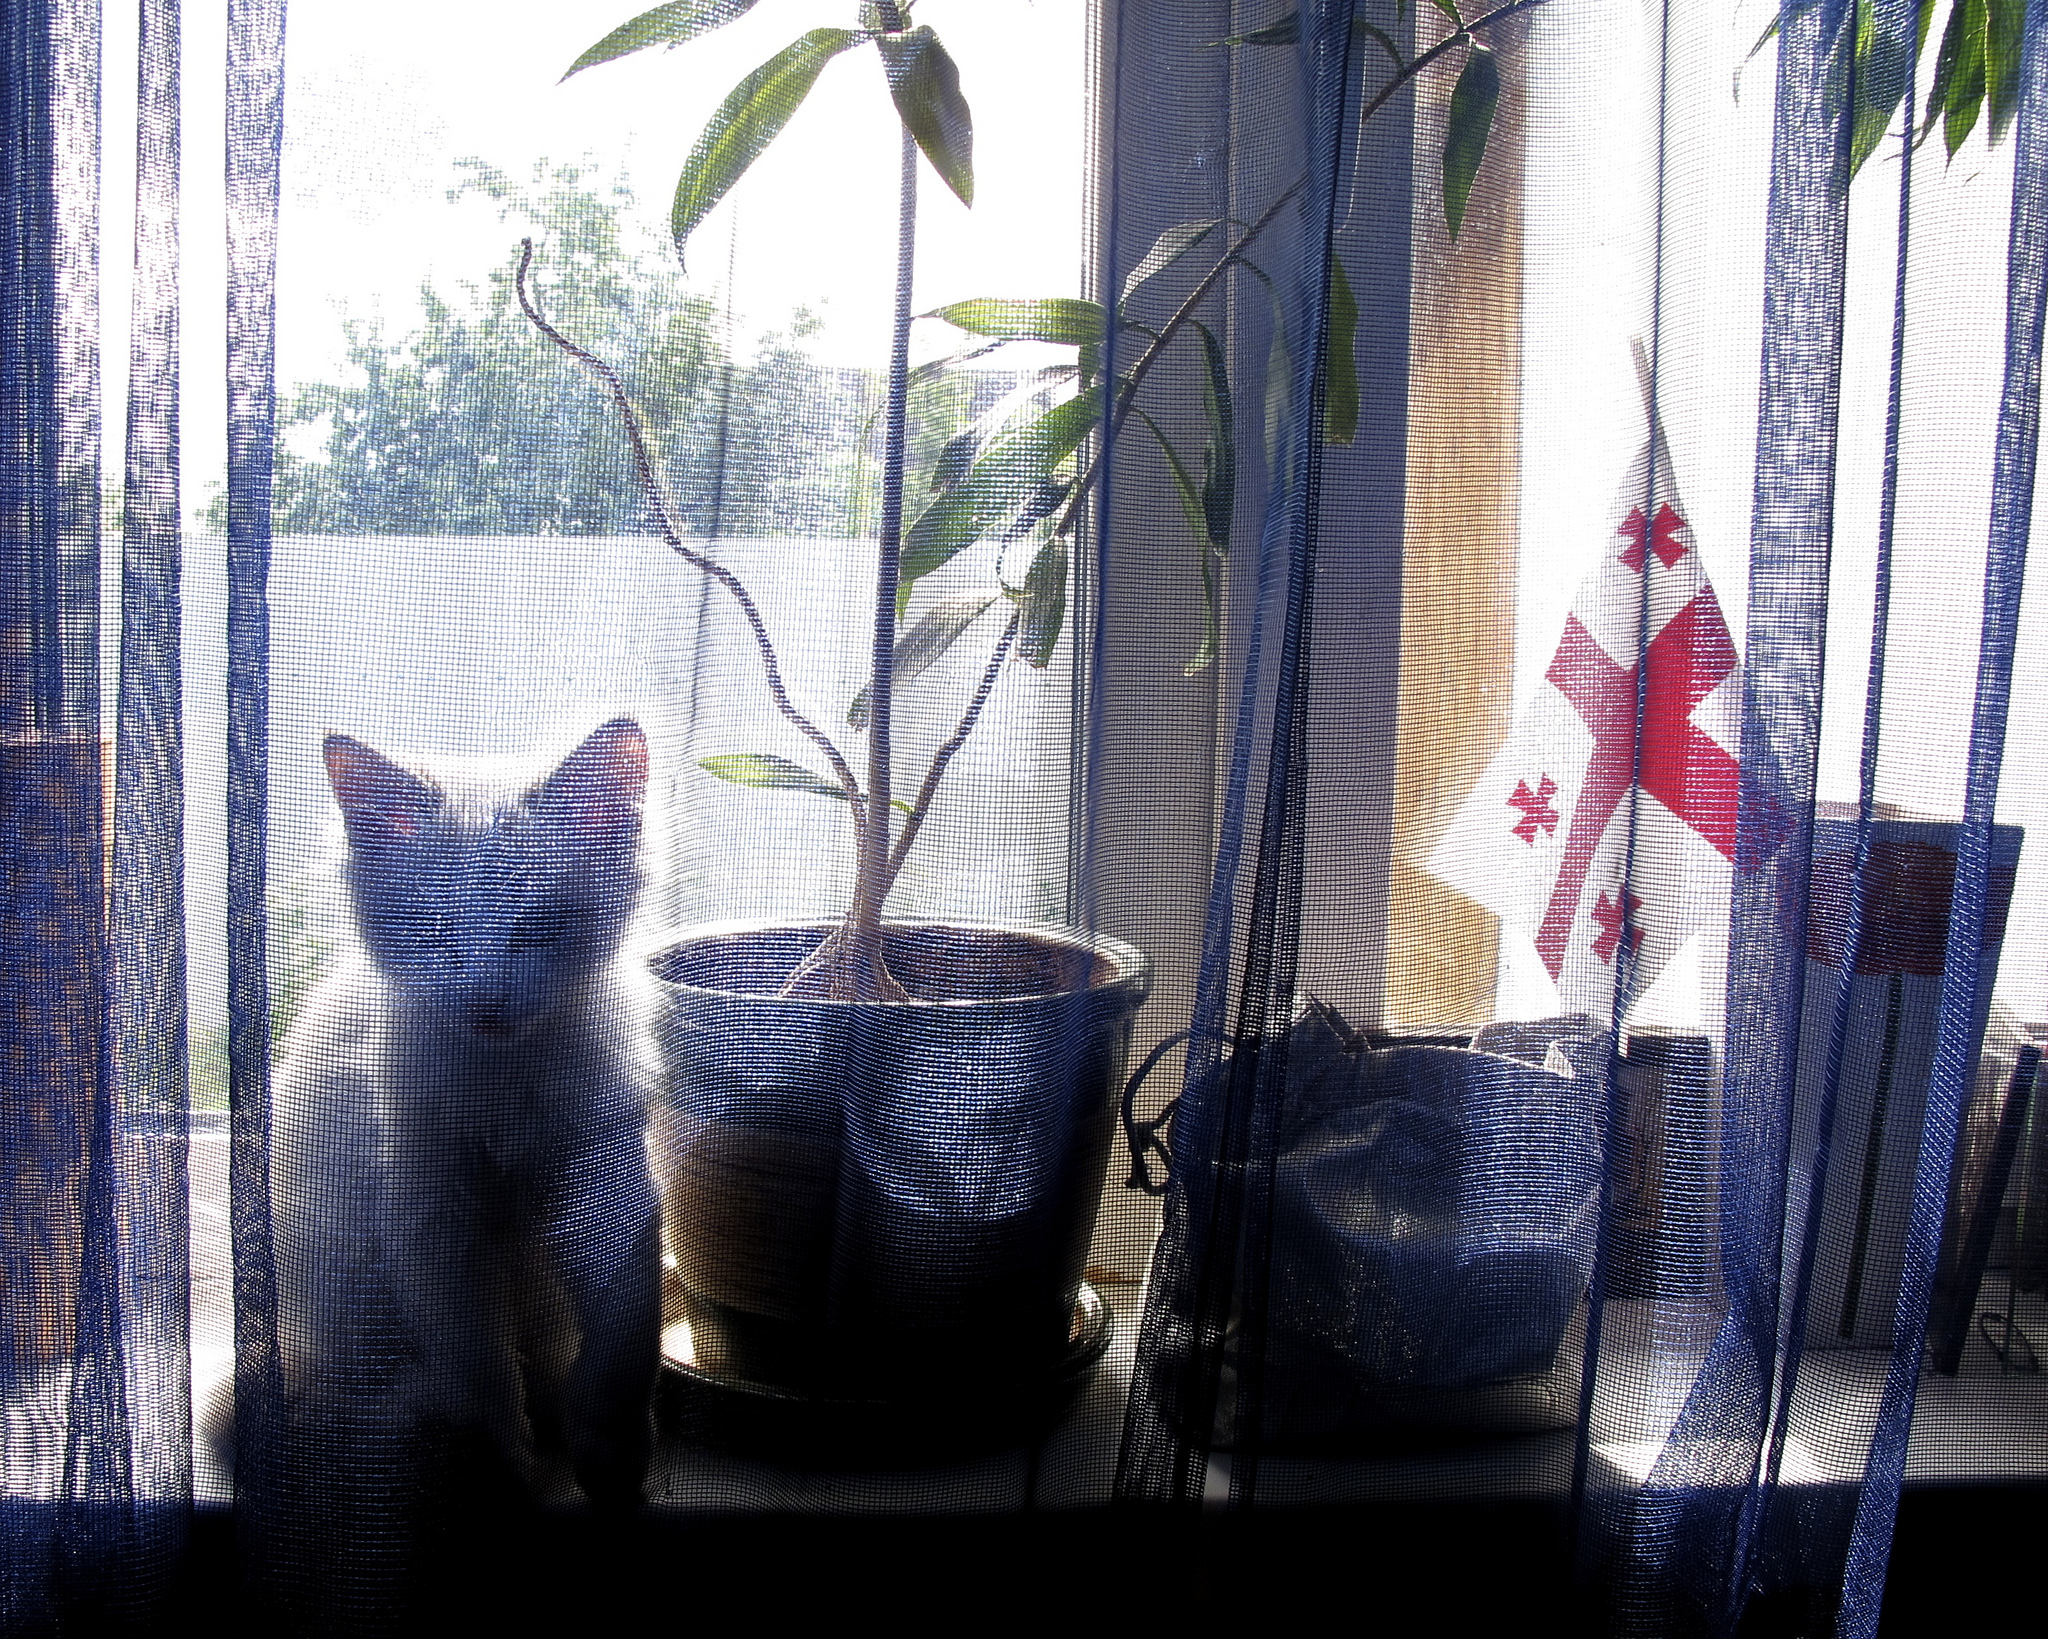 Cat on a windowsill with a small Georgian flag in a flower vase.